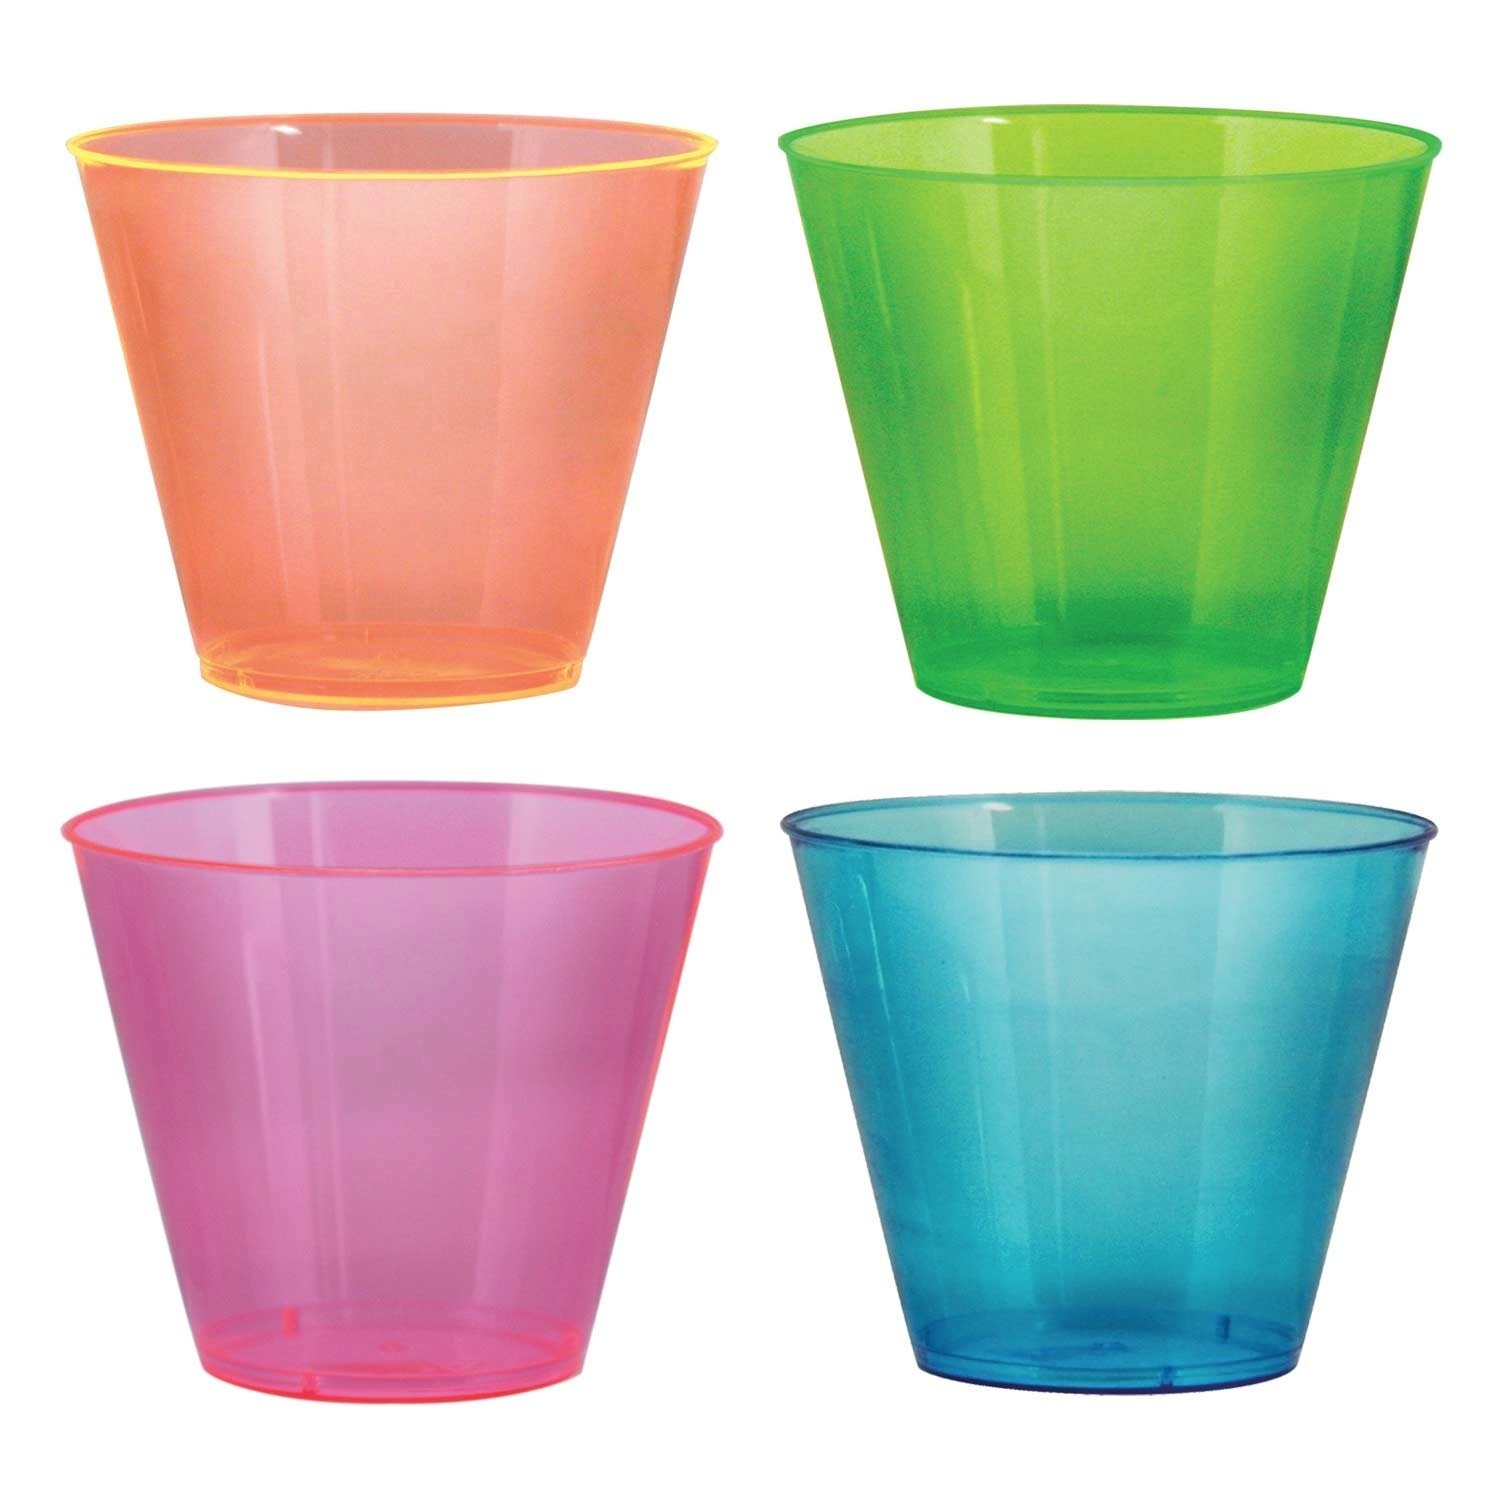 Party Essentials N95090 Brights Plastic Party Cups/Tumblers, 9-Ounce Capacity, Assorted Neon (Case of 600)